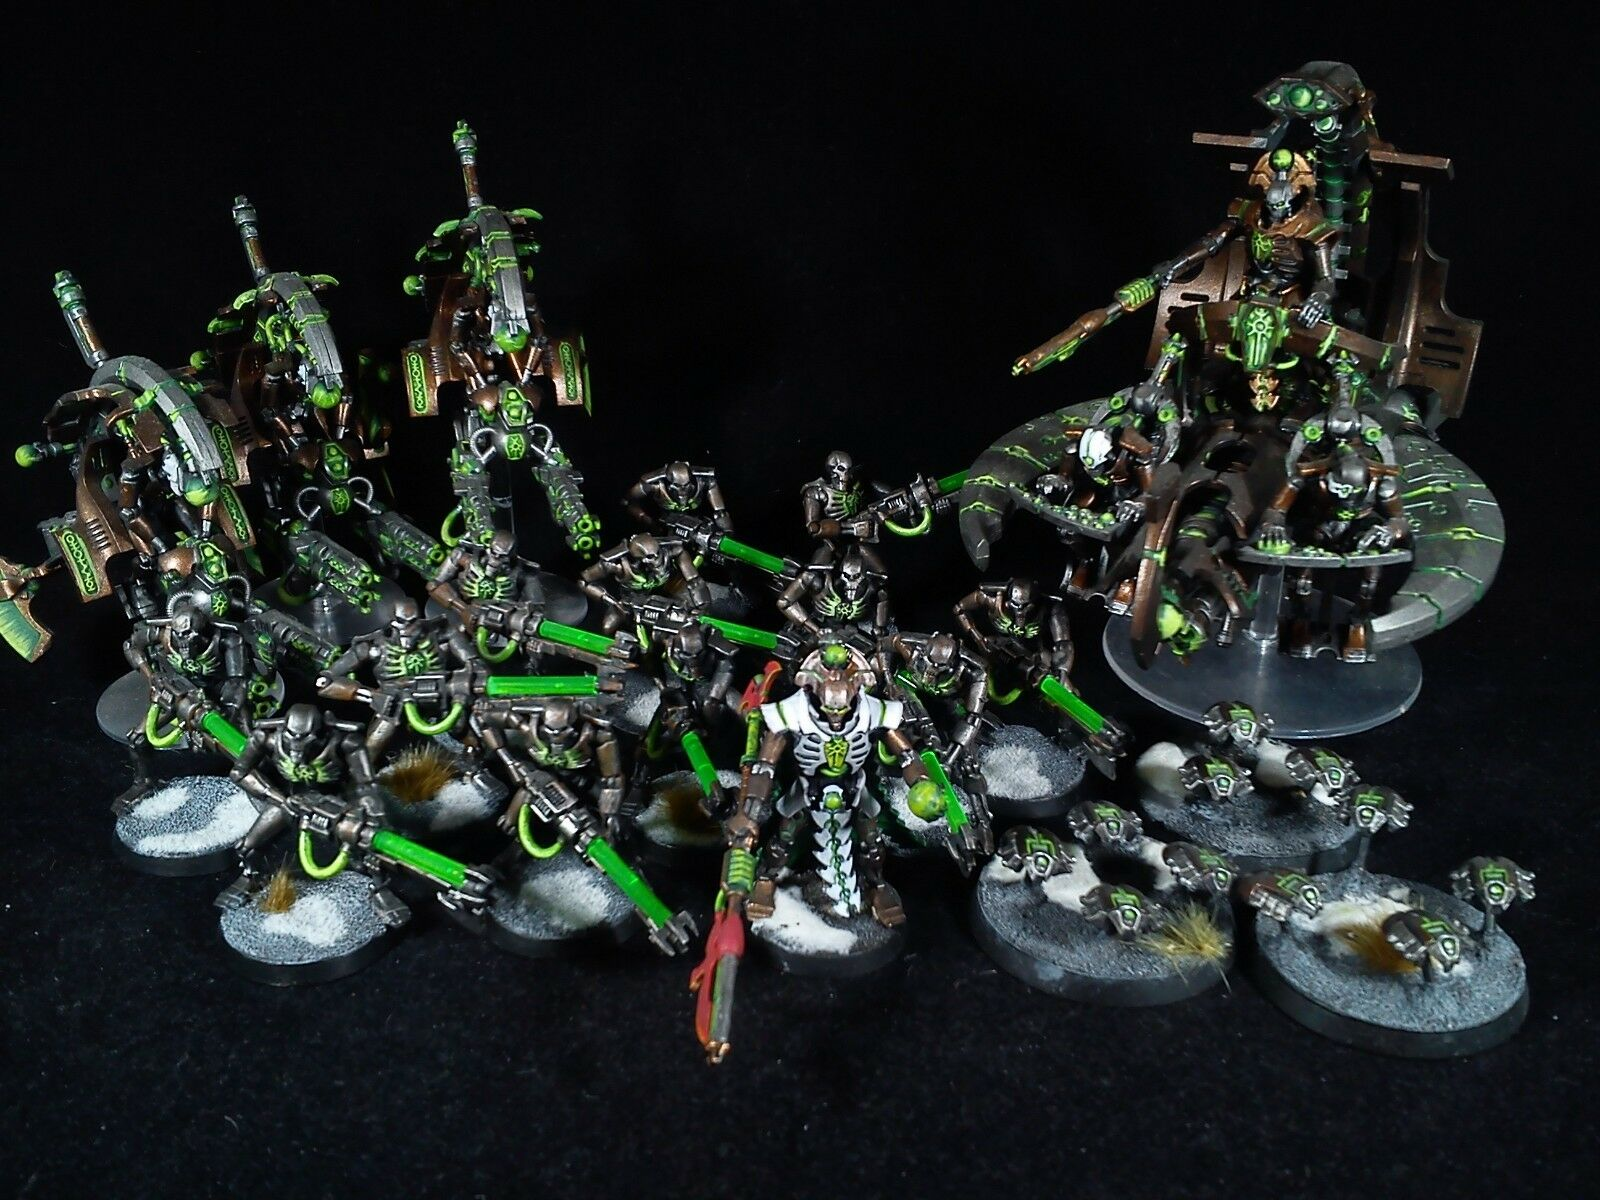 grandi offerte Necrons army 3 warhammer 40k PAINTED PAINTED PAINTED  marchio in liquidazione